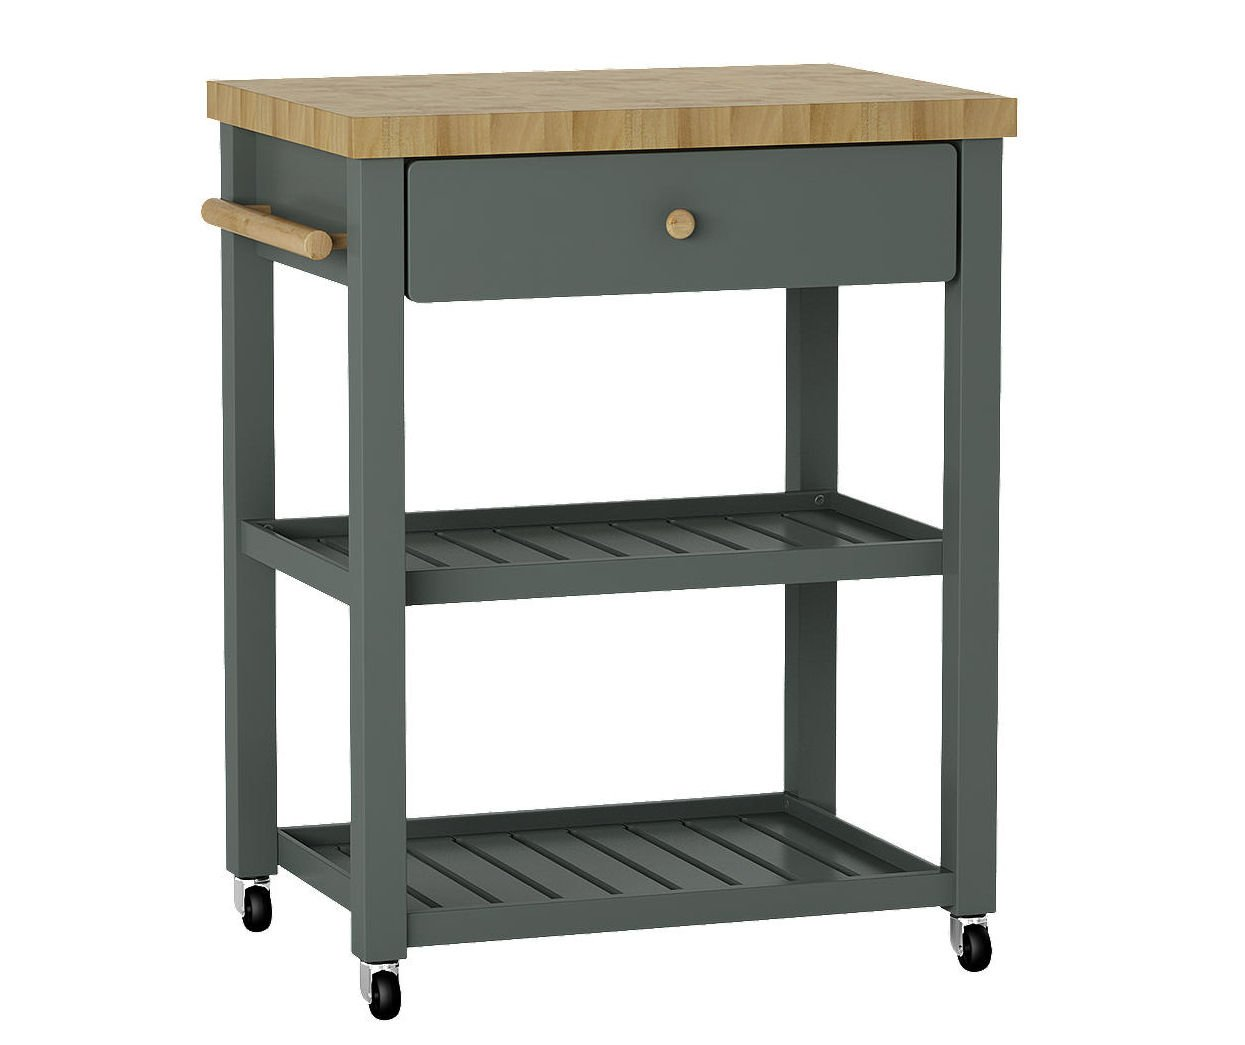 Croft Collection Butchers Trolley with wheels from John Lewis & Partners